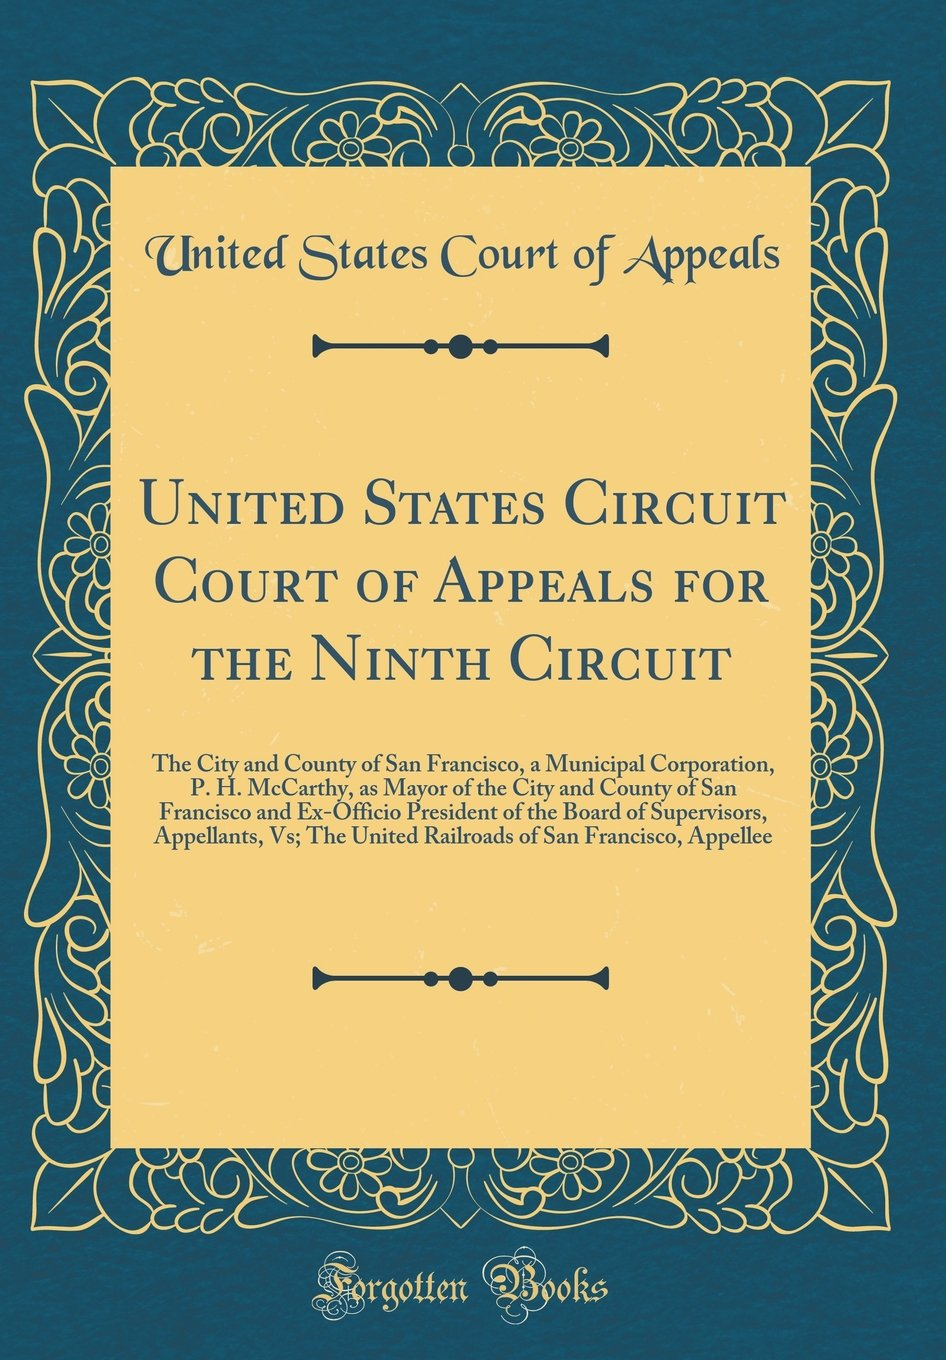 Download United States Circuit Court of Appeals for the Ninth Circuit: The City and County of San Francisco, a Municipal Corporation, P. H. McCarthy, as Mayor ... of the Board of Supervisors, Appellants, pdf